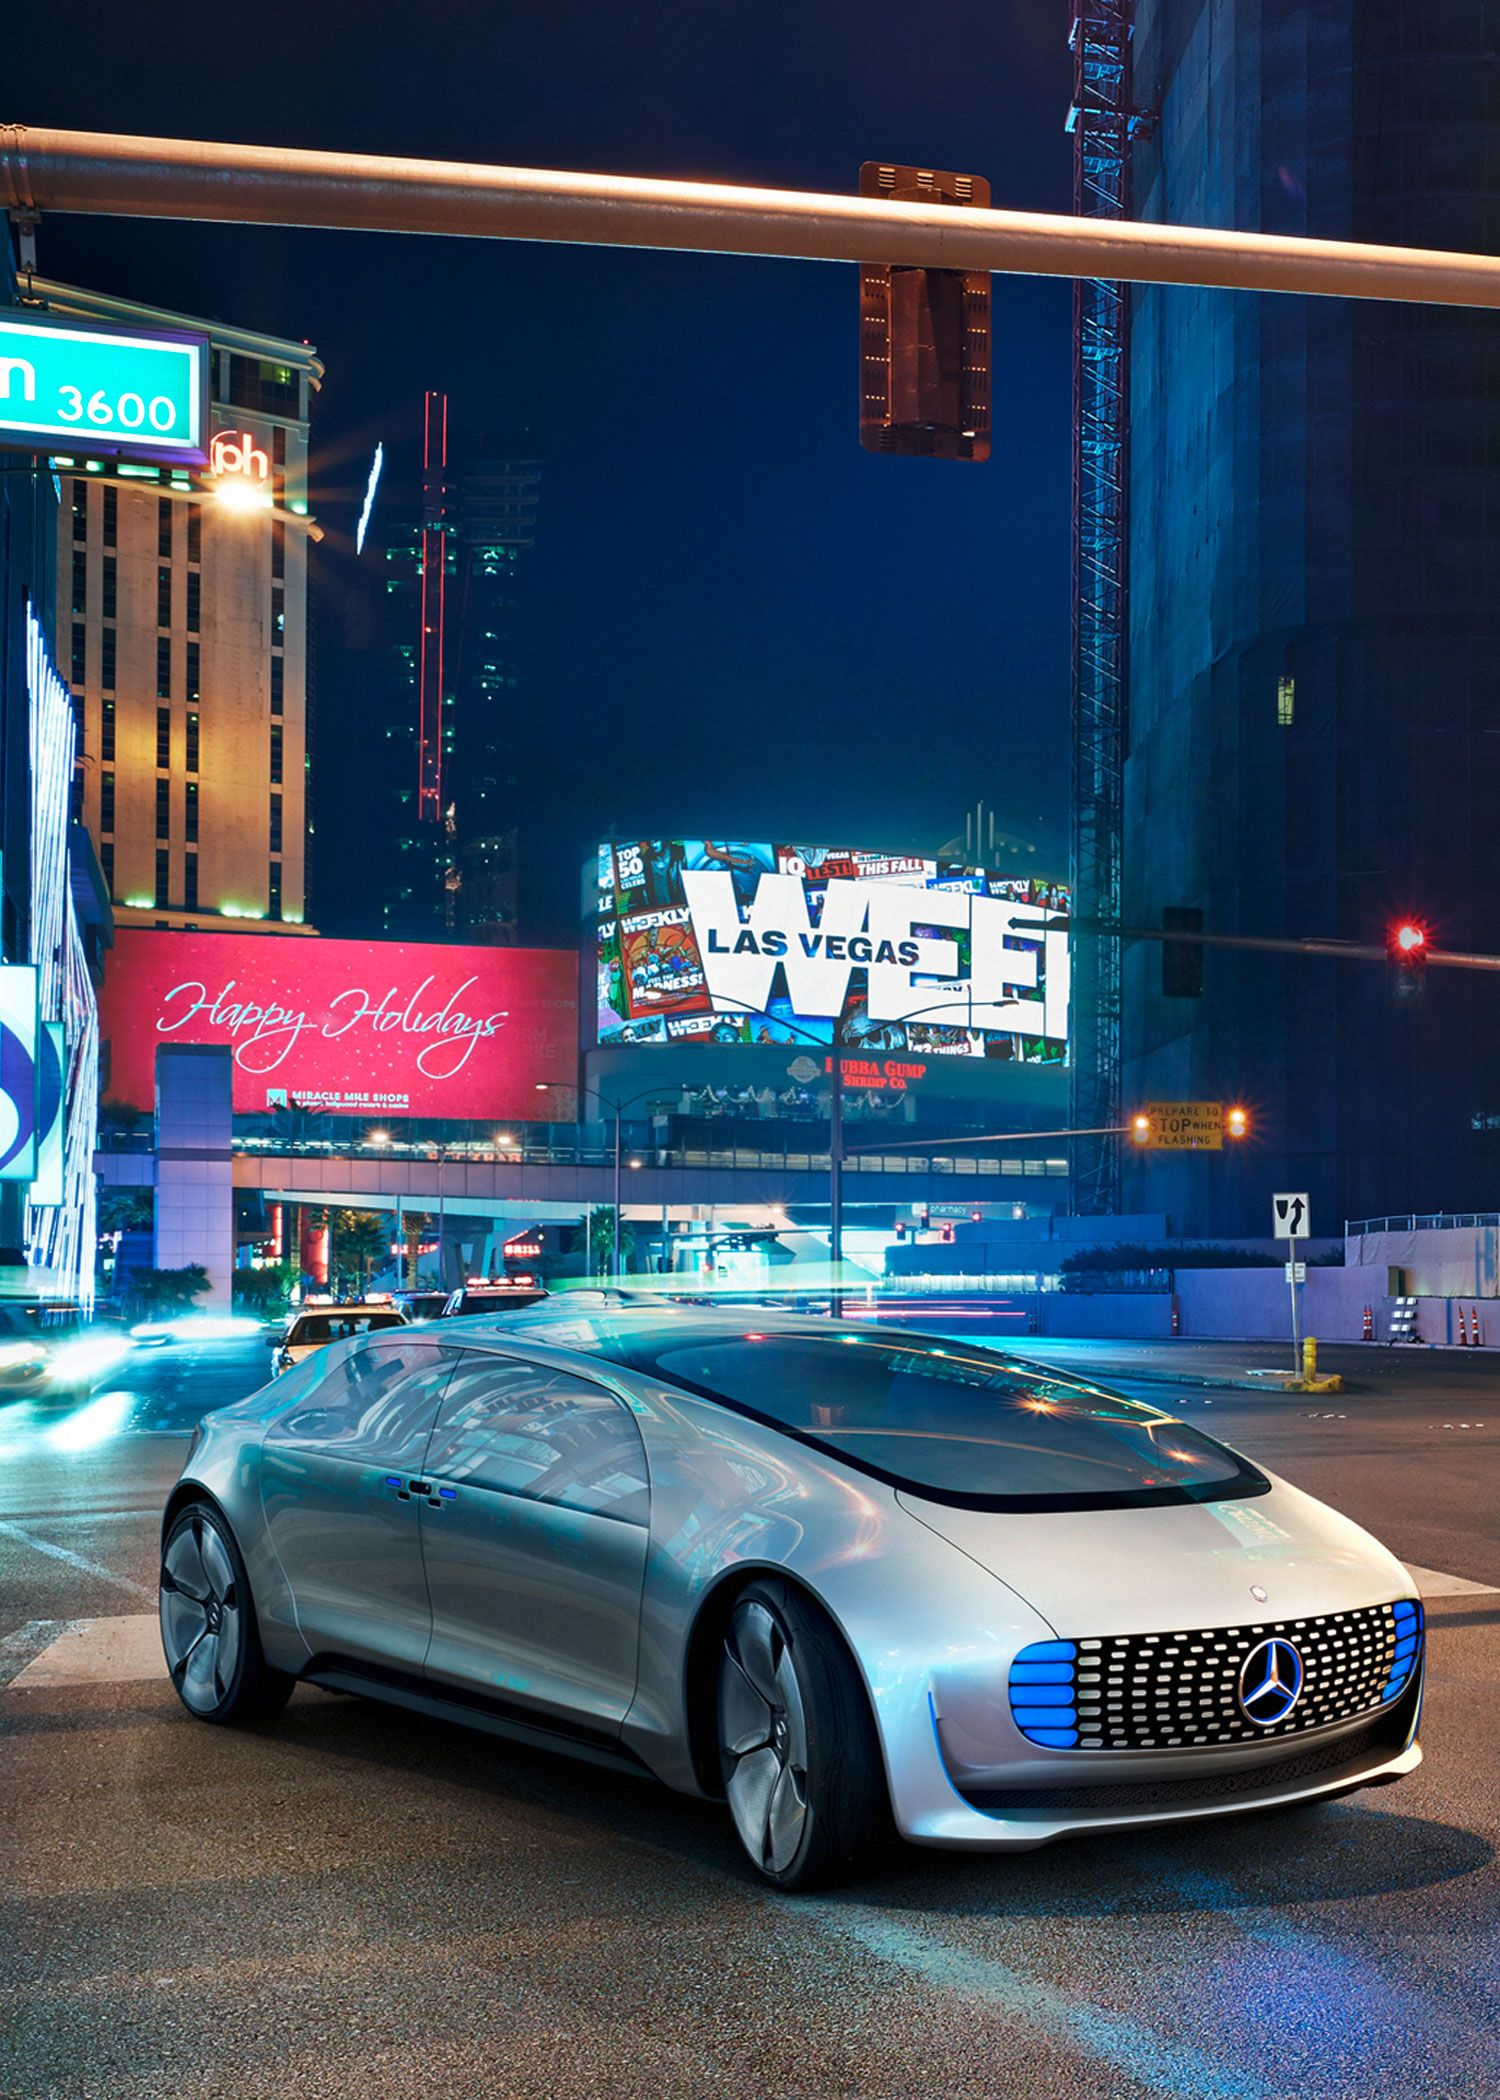 Mercedes benz 280sl car vehicl wrap mercedes benz merced pagoda - The Mercedes Benz F 015 Is About The Future Not Just Autonomous Driving We Take A Ride In The Radical Rethink Of What A Car Should Be